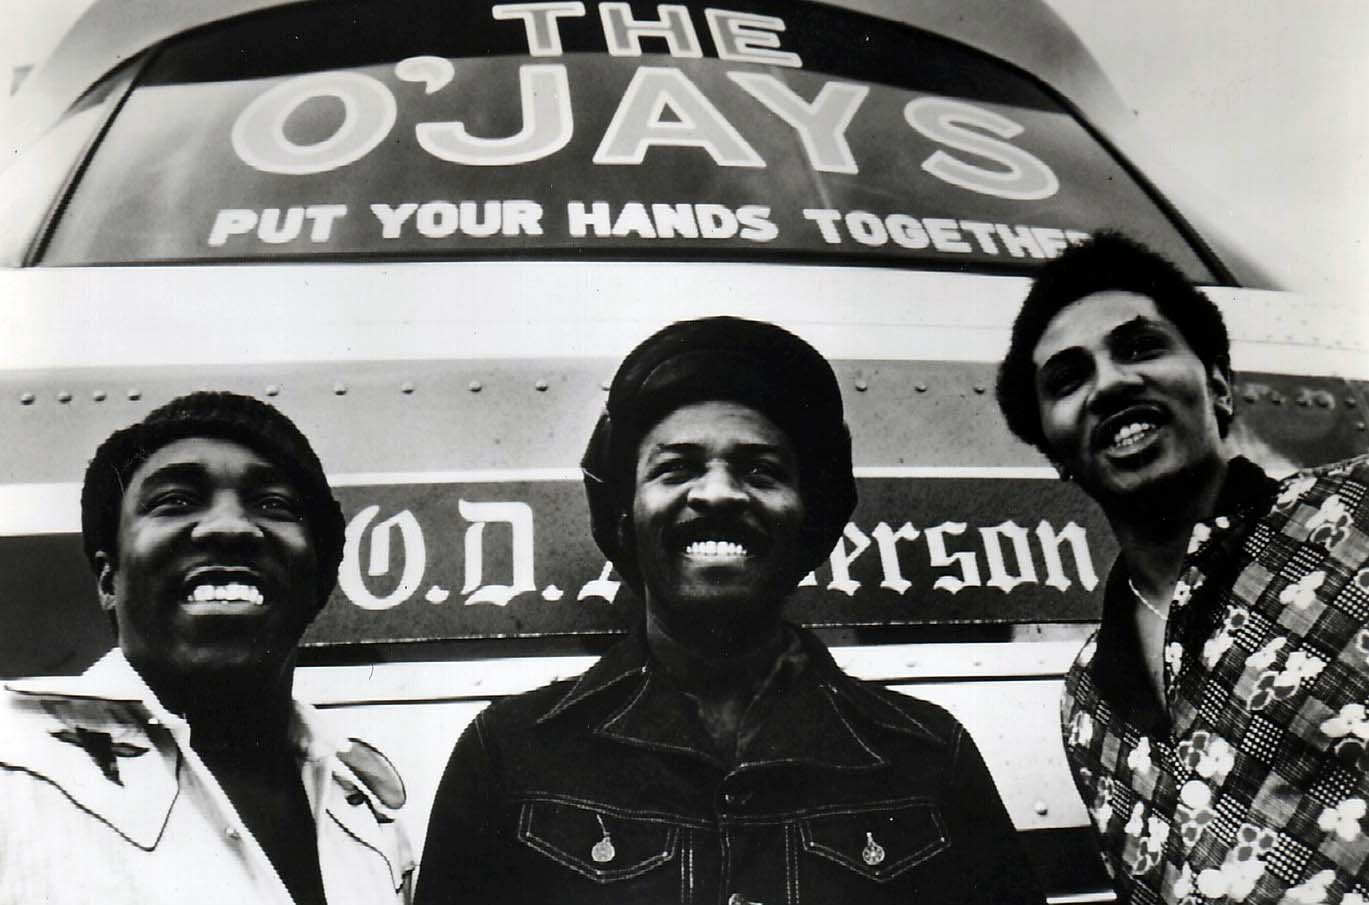 The O'Jays (from left: Eddie Levert, Walter Williams and William Powell) with custom touring bus, 1974